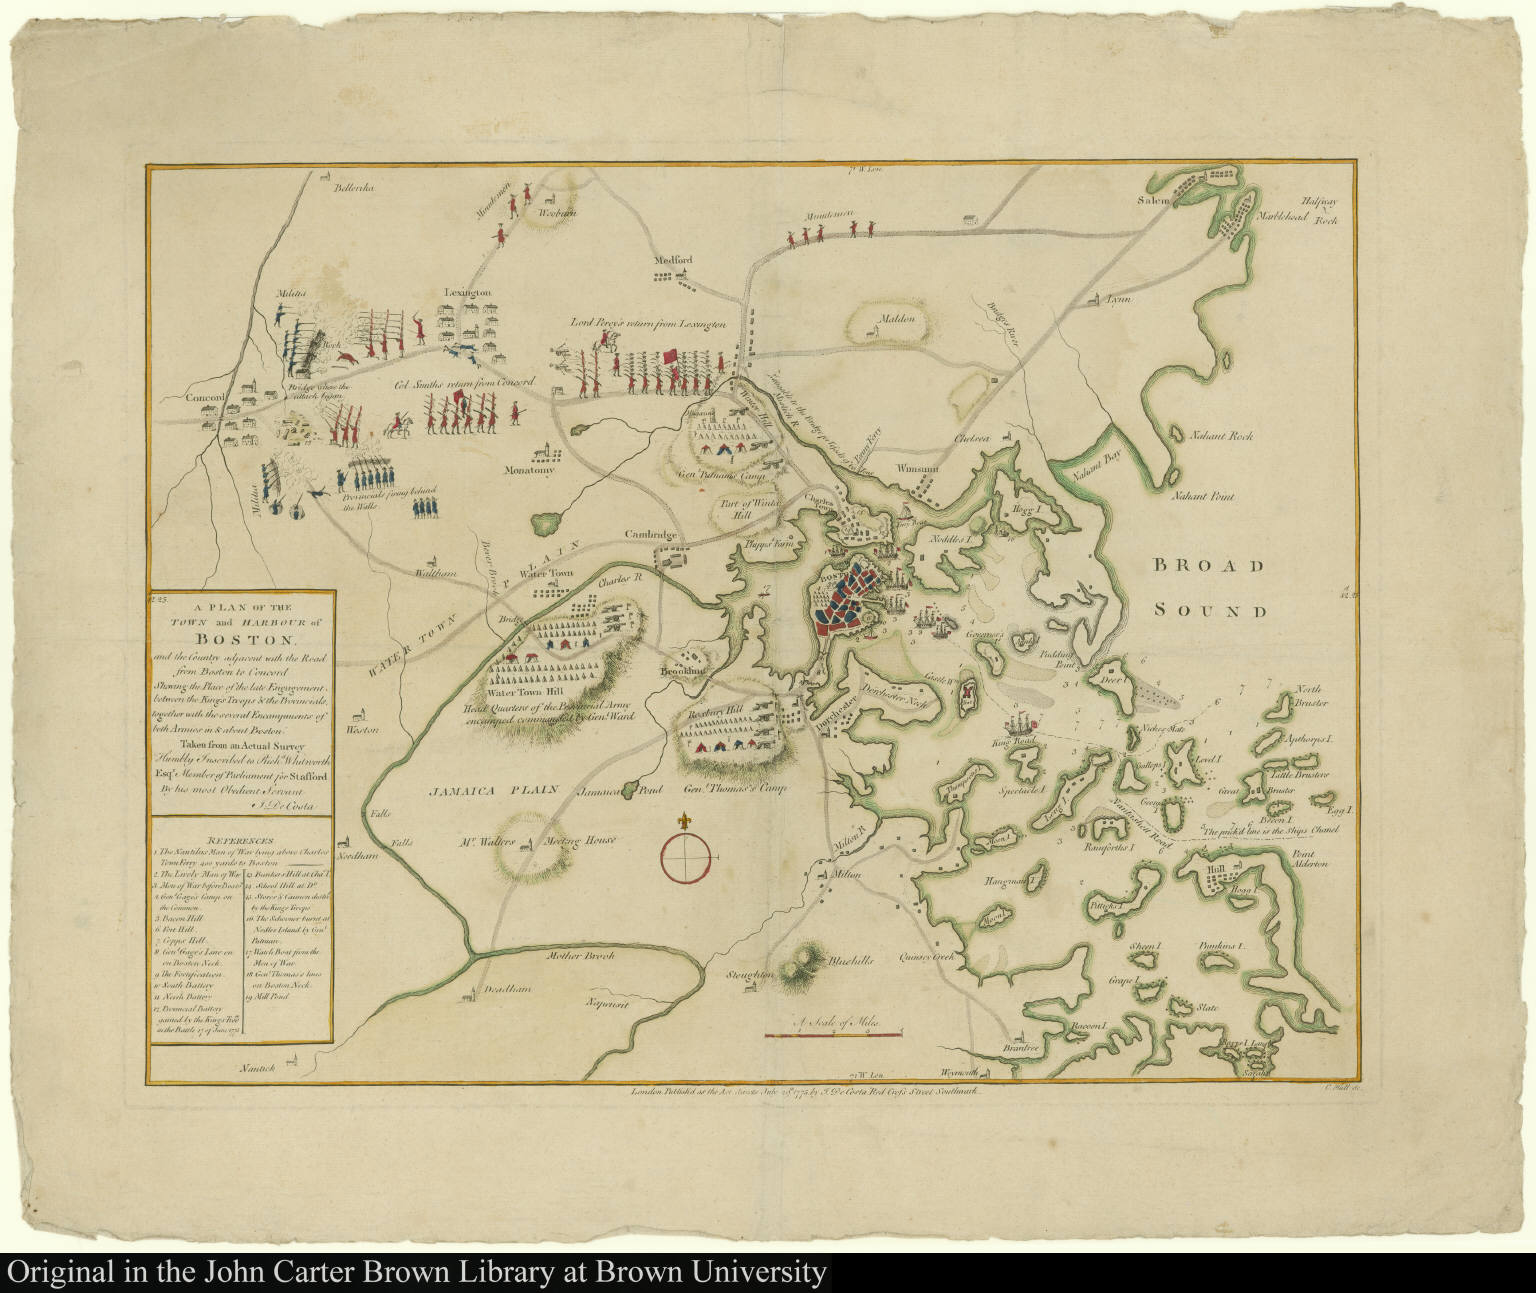 A Plan of the Town and Harbor of Boston and the Country adjacent with the Road from Boston to Concord Showing the Place of the late Engagement between the King's Troops & the Provincials ...